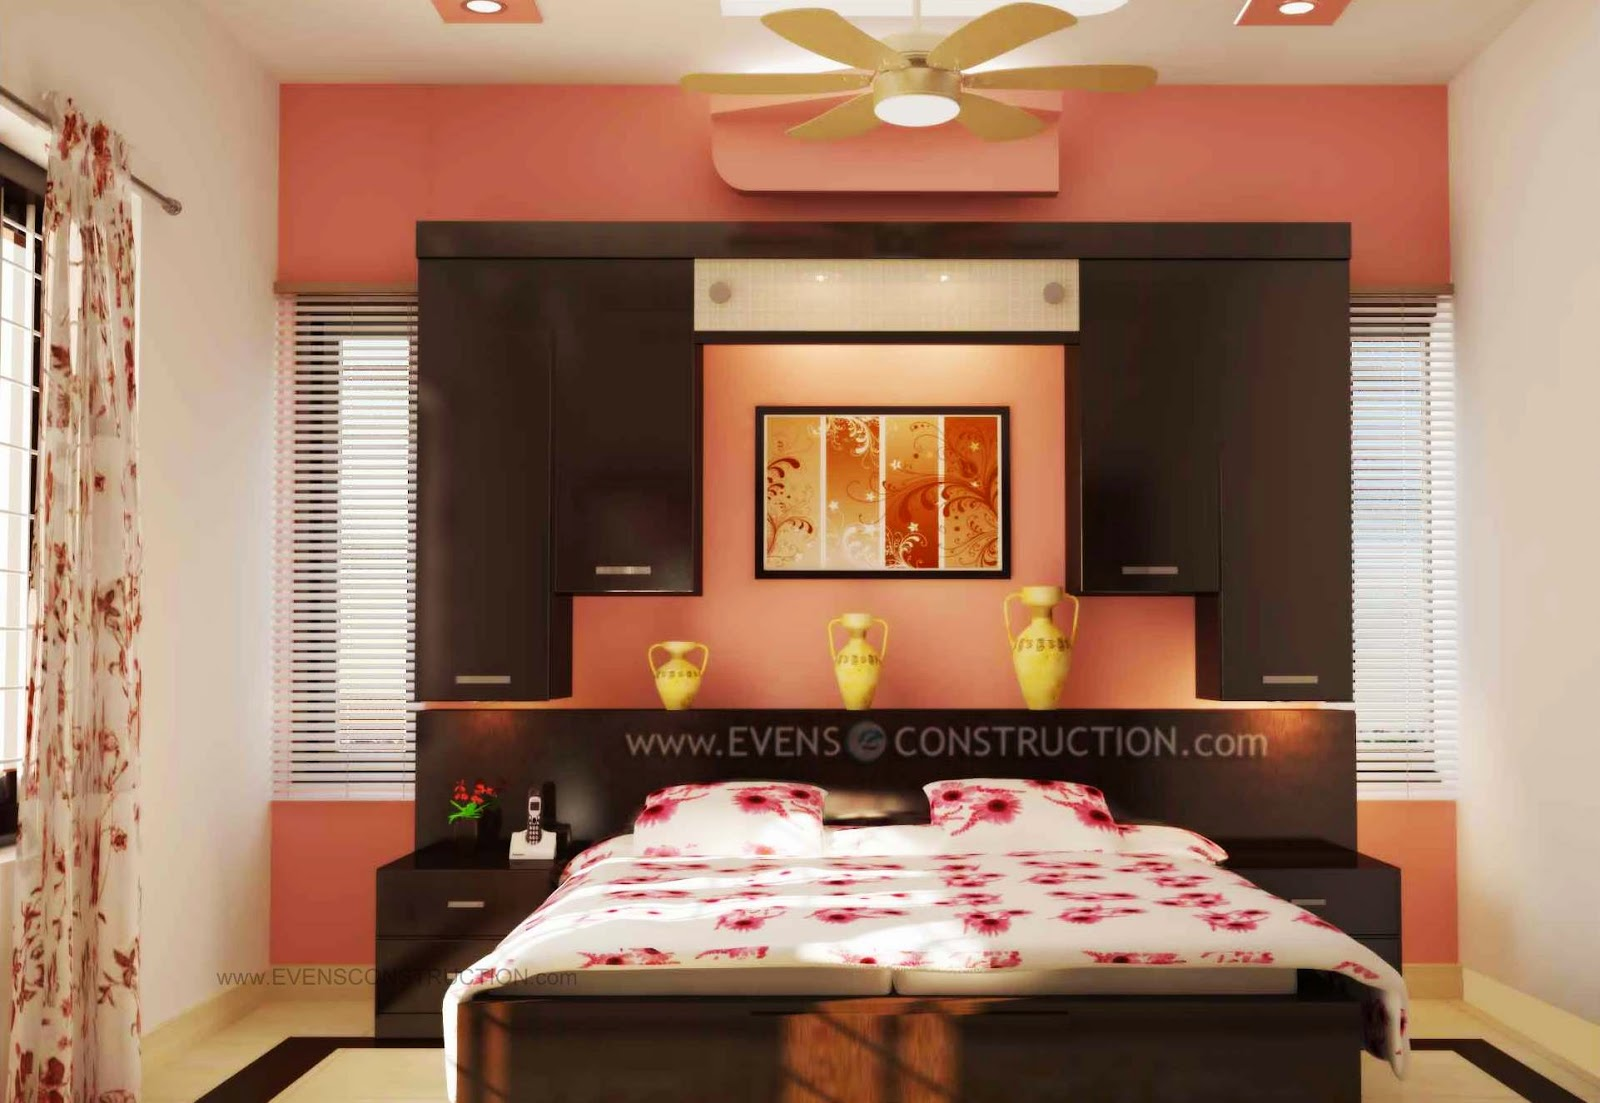 Evens Construction Pvt Ltd Modern Bedroom Design